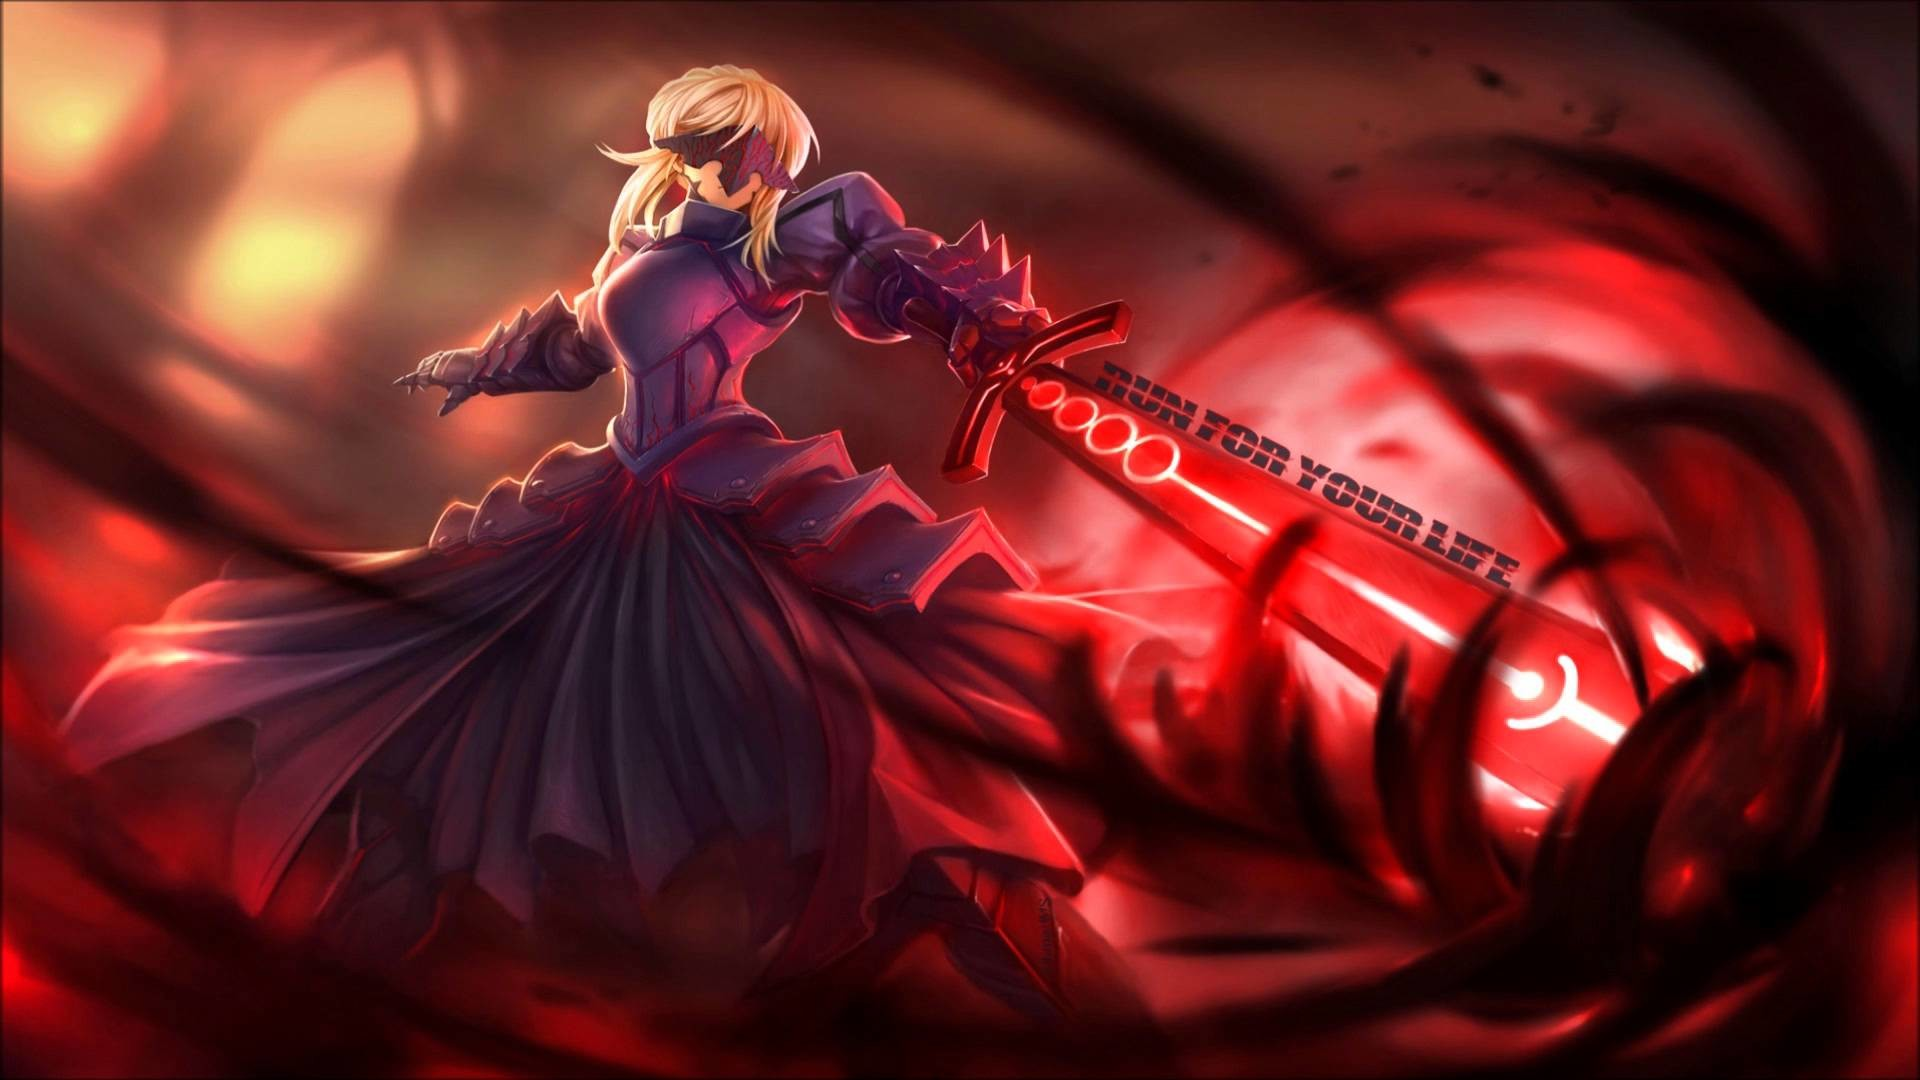 Fate Stay Night Saber | *Fate/Stay Night – Saber | Pinterest | Fate stay  night, Type moon and Anime